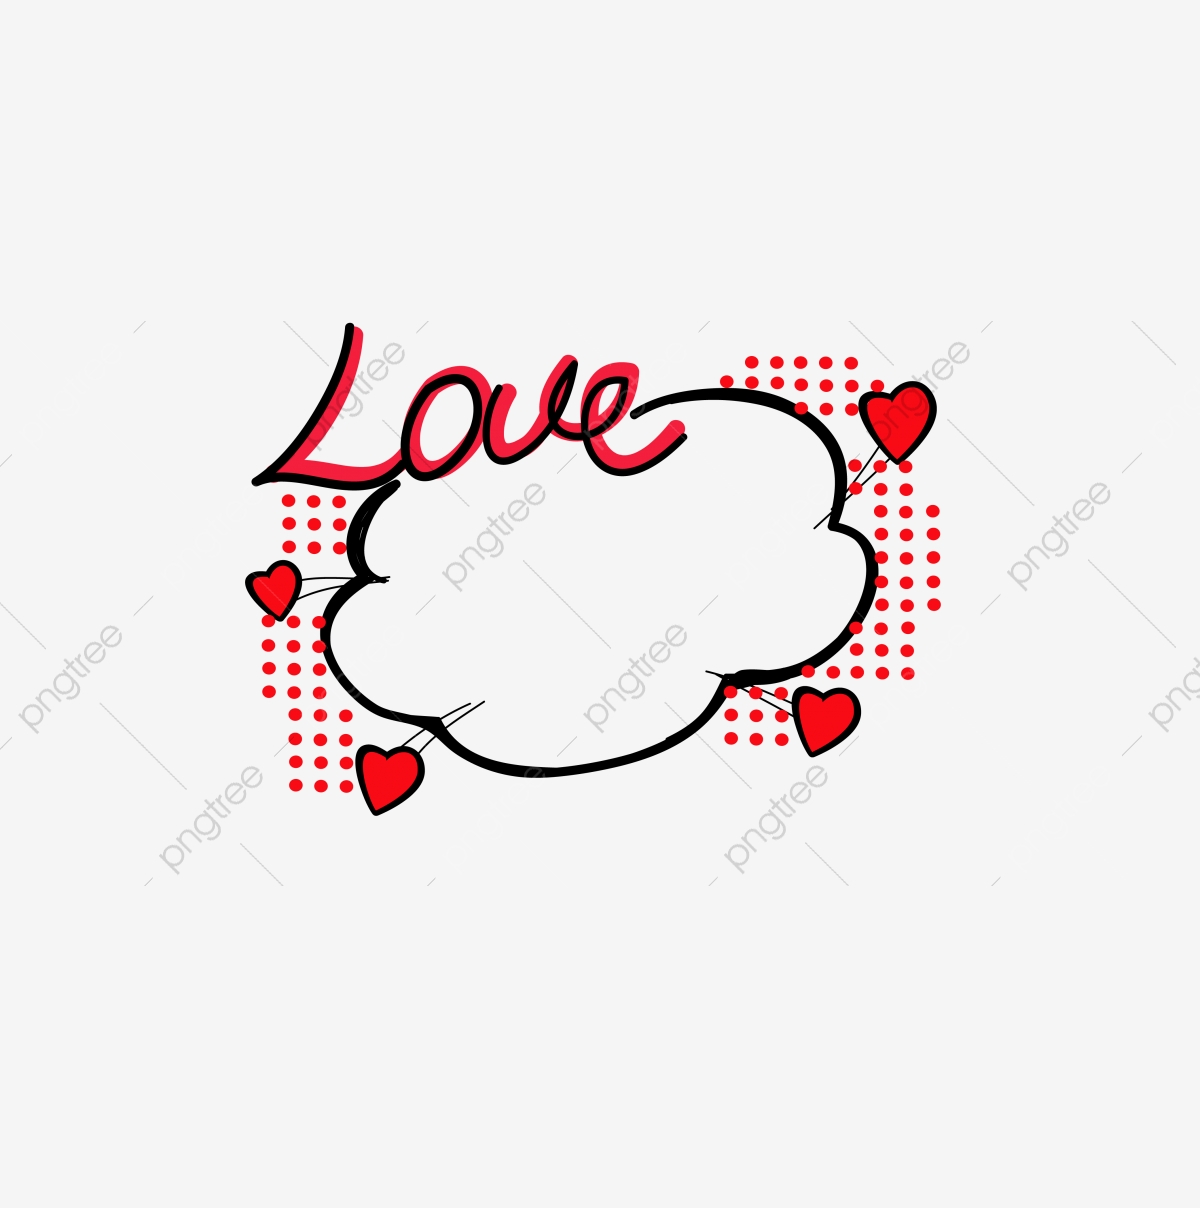 Explosion clipart heart, Explosion heart Transparent FREE ...